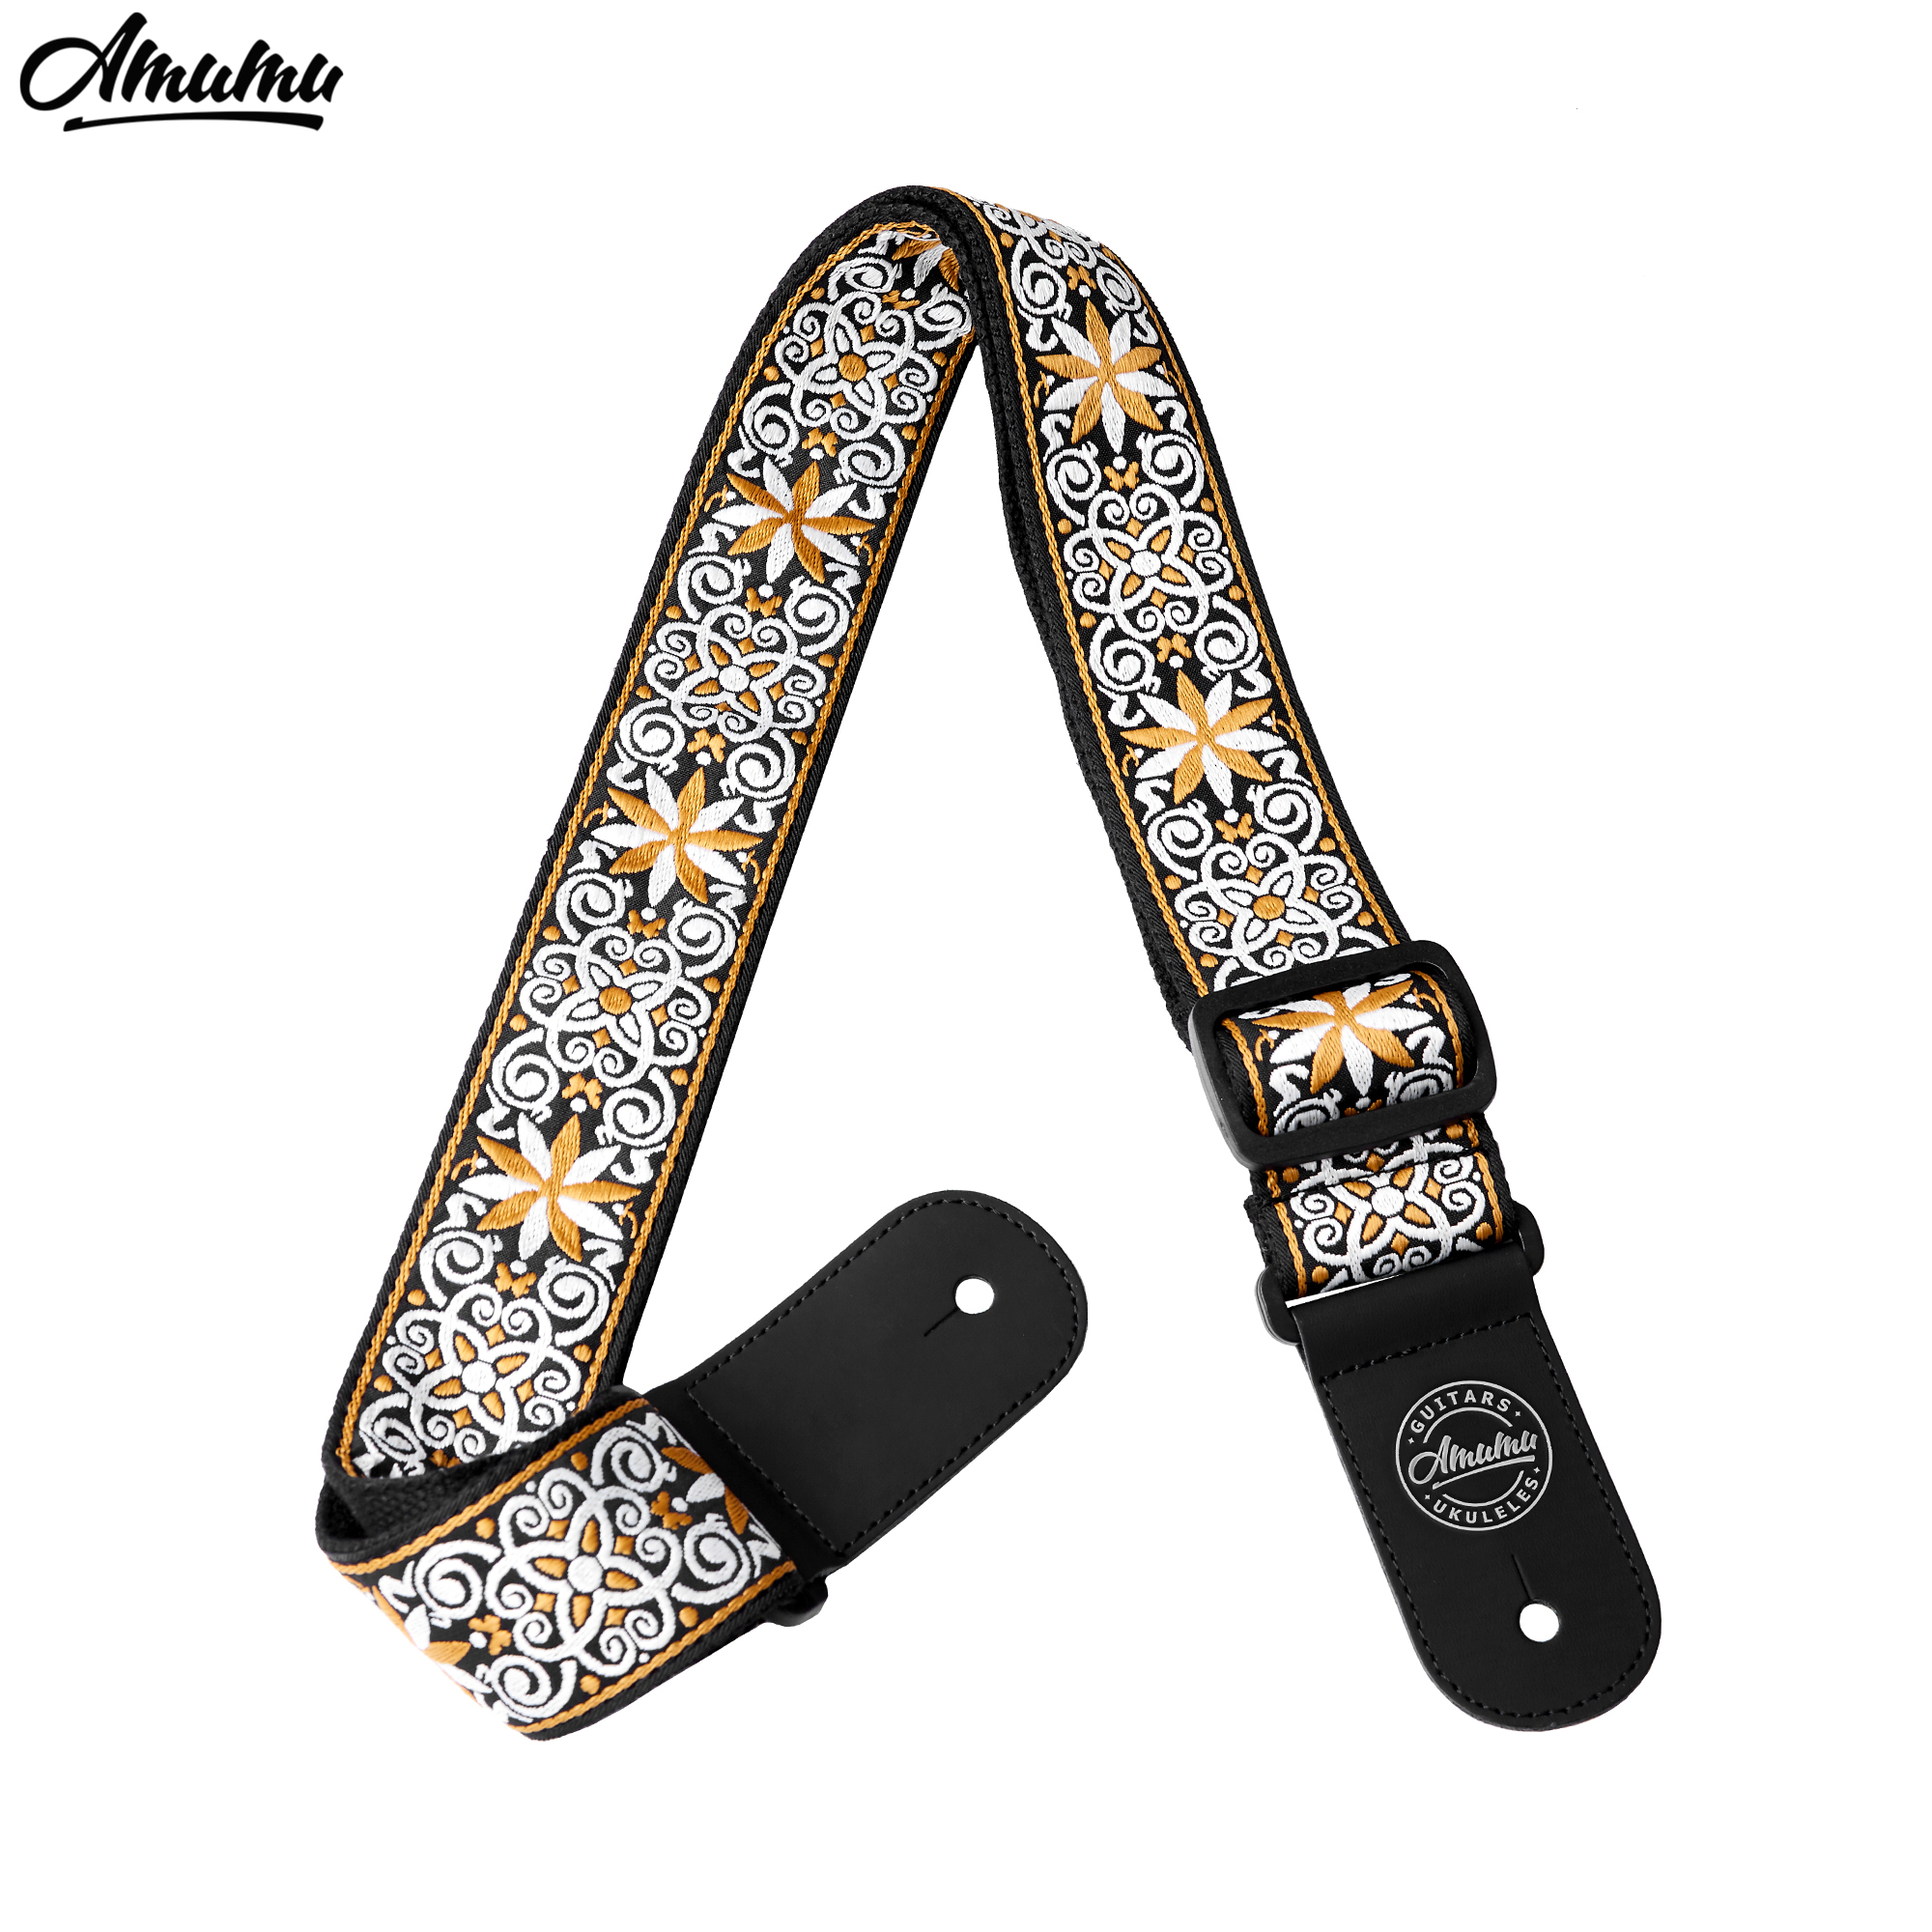 Amumu Woodstock jacquard Cotton Guitar Straps with Leather End for Folk Acoustic Electric Guitar 89-156cm Length 5cm Width S110 amumu yellow nylon guitar strap for folk guitar police do not cross pattern guitar belt s008 16